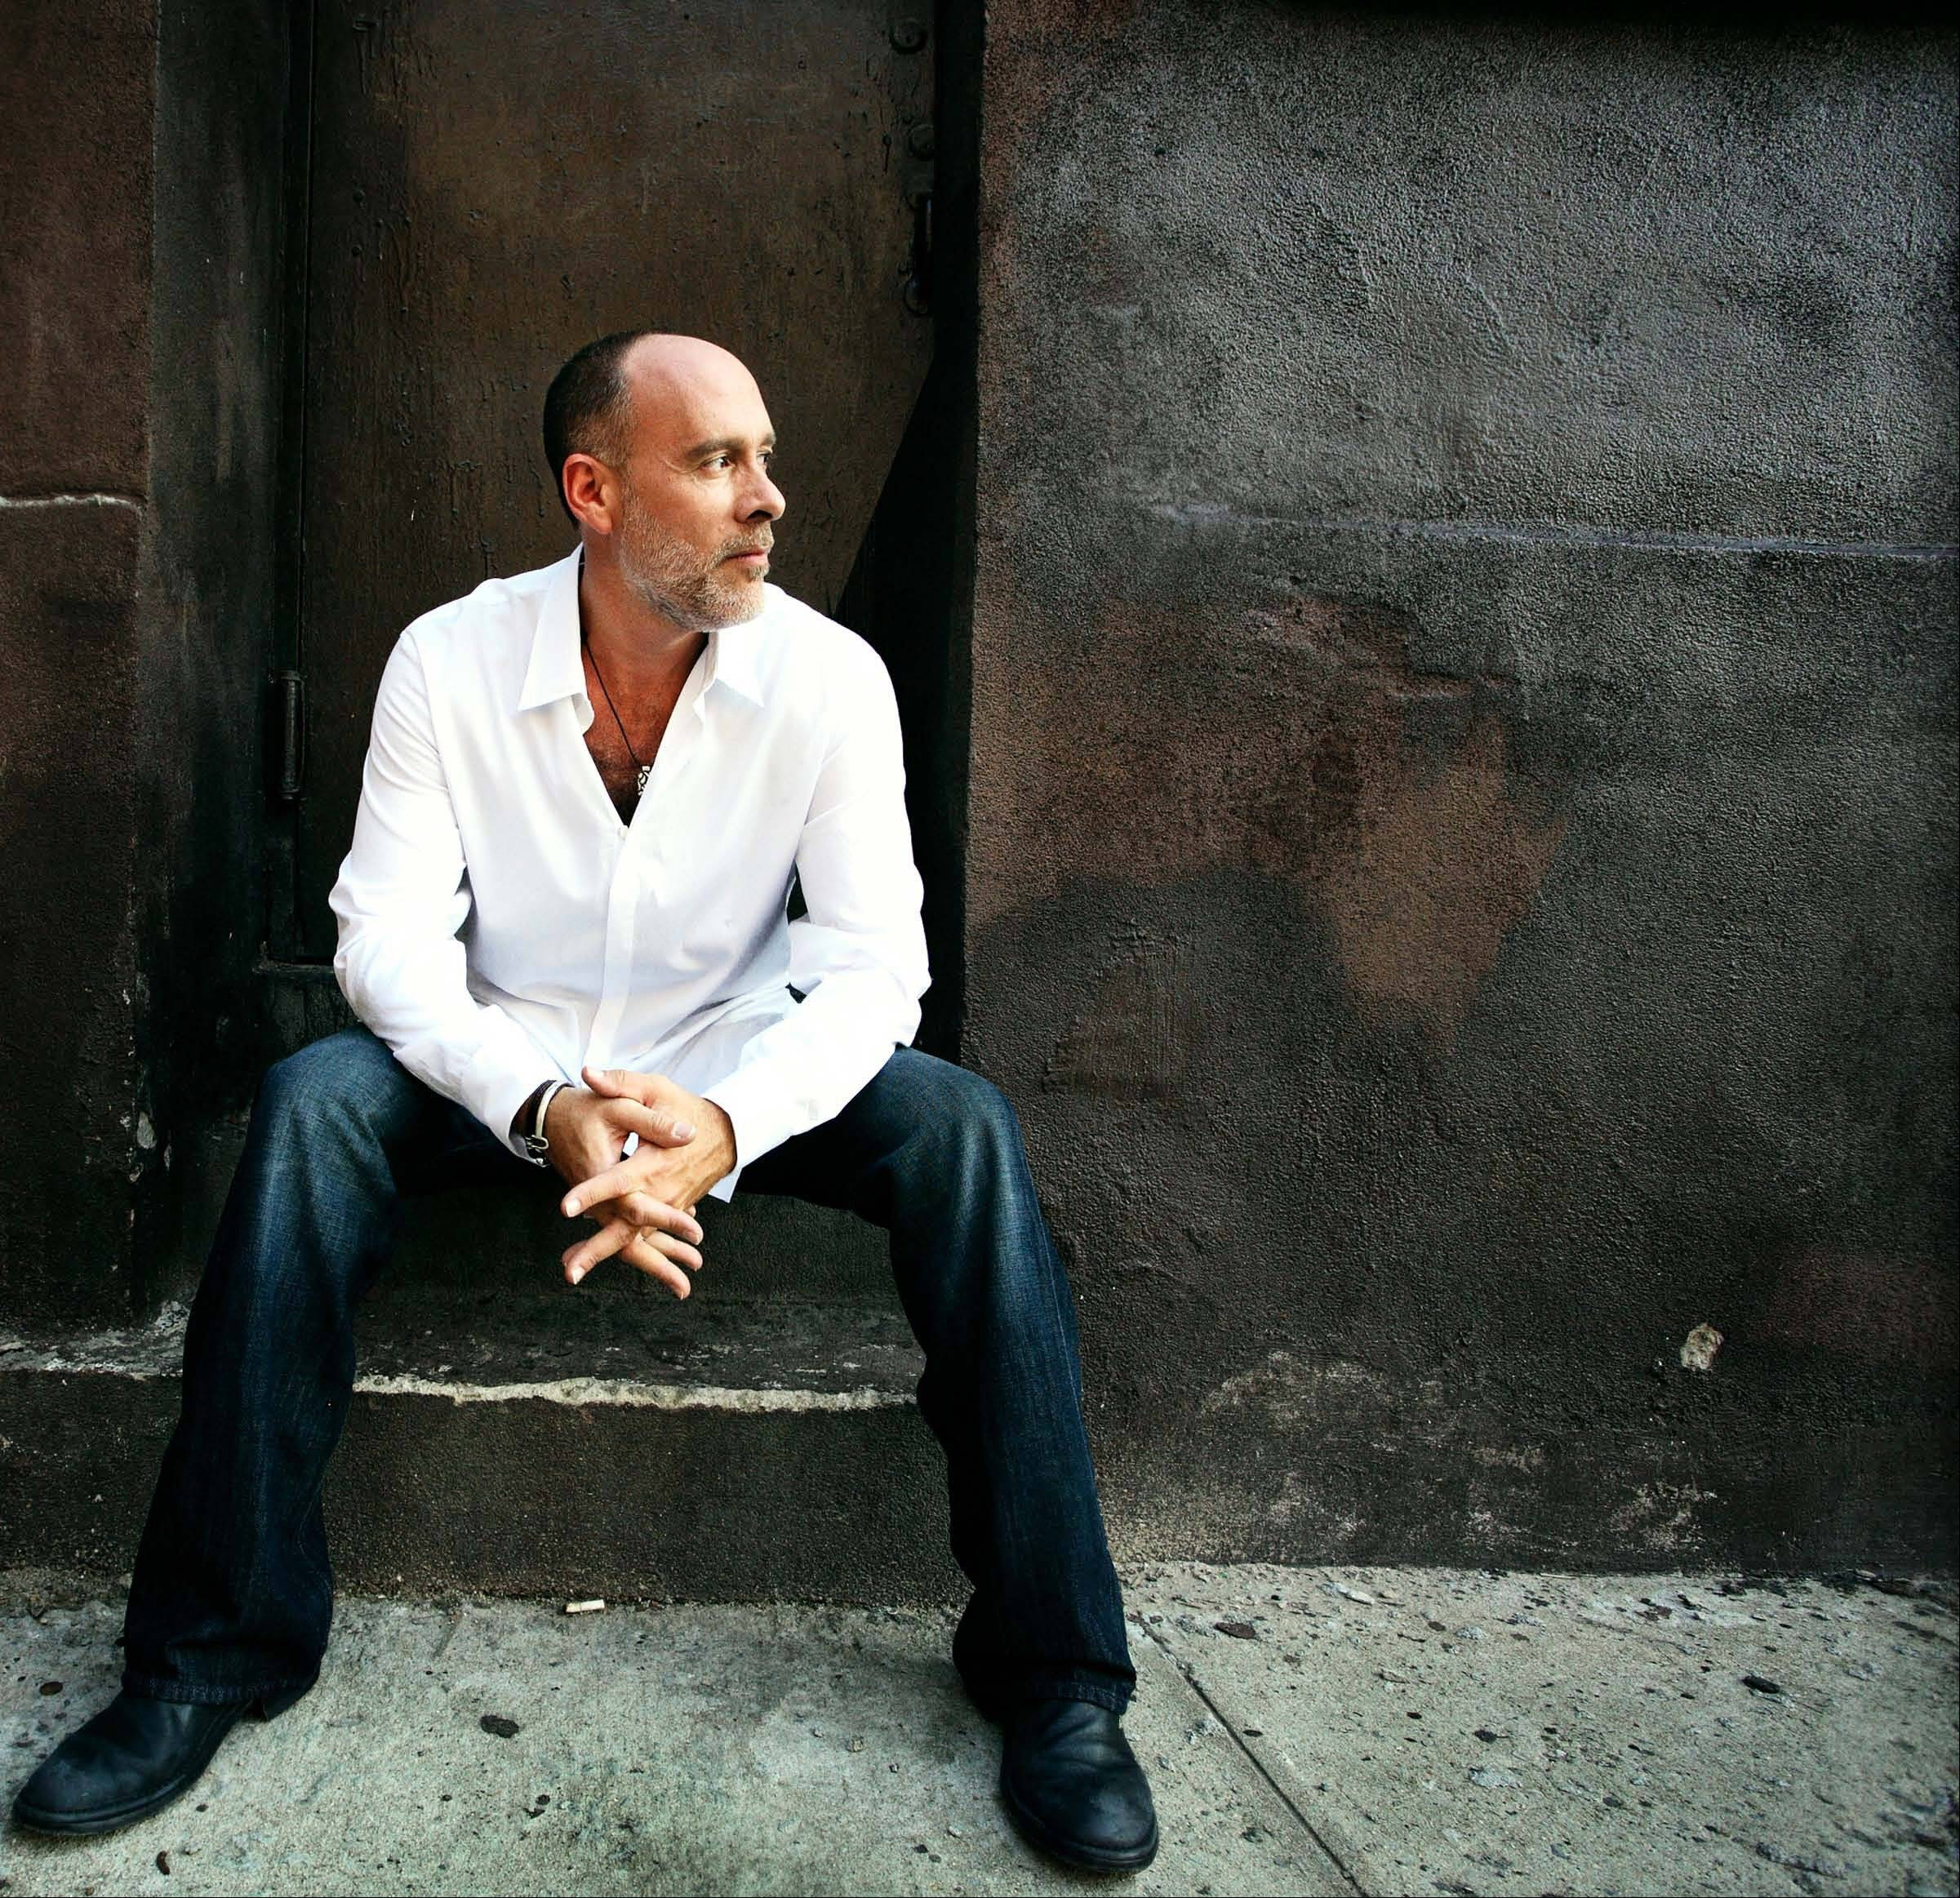 Folk/rock singer and songwriter Marc Cohn has rescheduled his canceled September concert at Elgin Community College's Arts Center to Saturday, March 15.